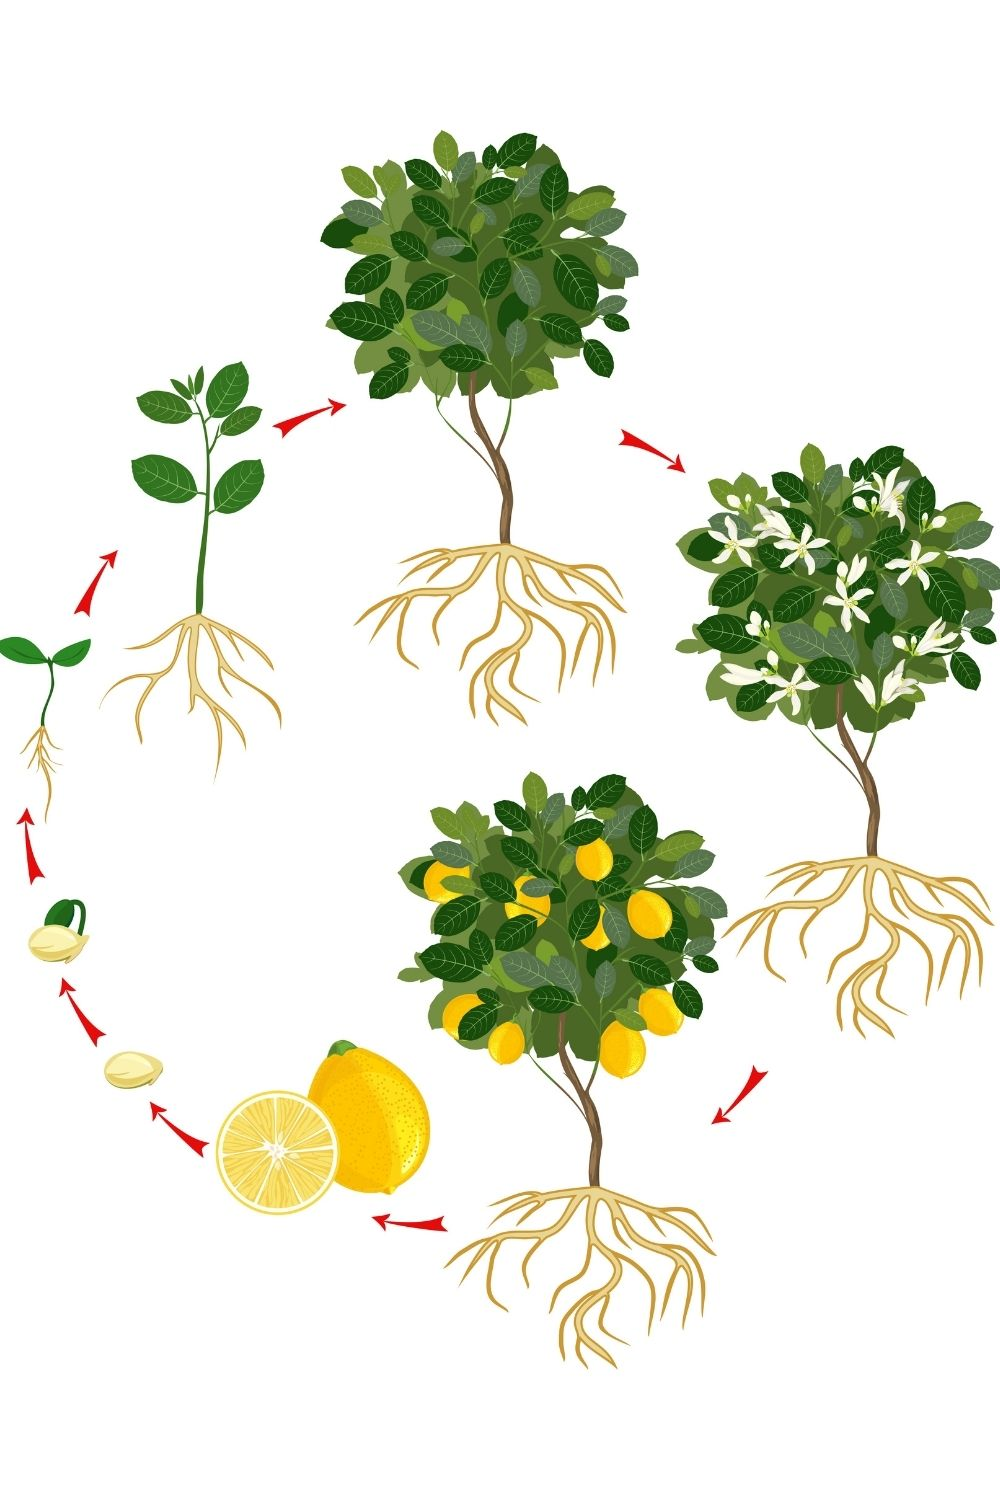 illustrated growth cycle of a lemon plant